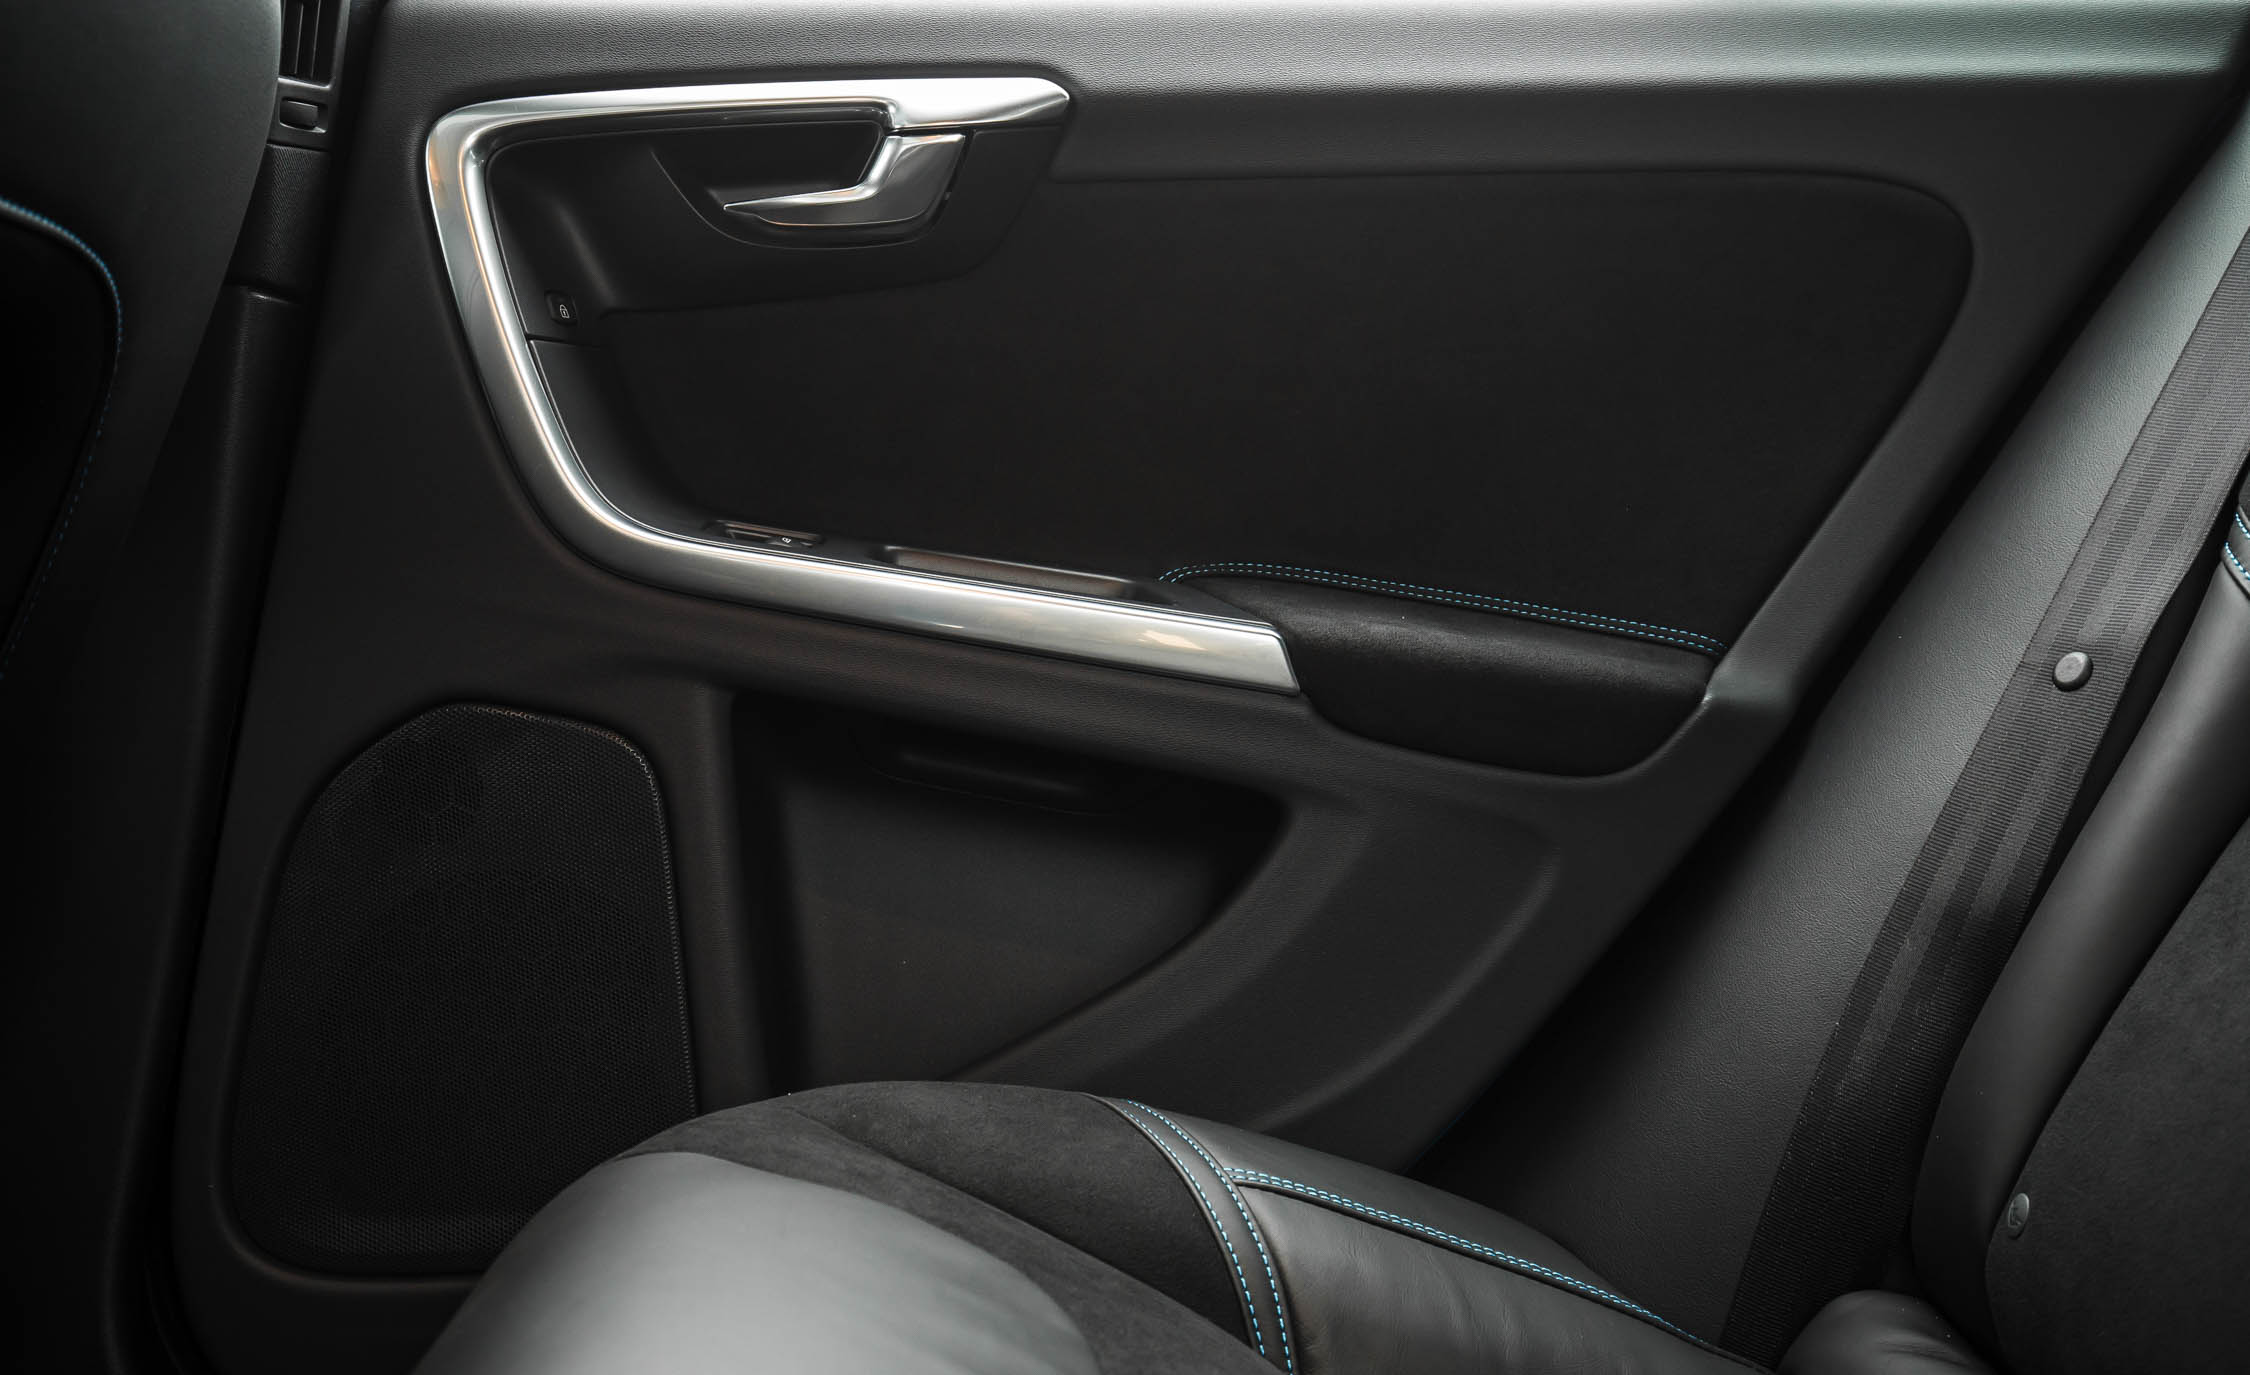 2017 Volvo V60 Polestar Interior View Door Trim Rear (View 31 of 53)